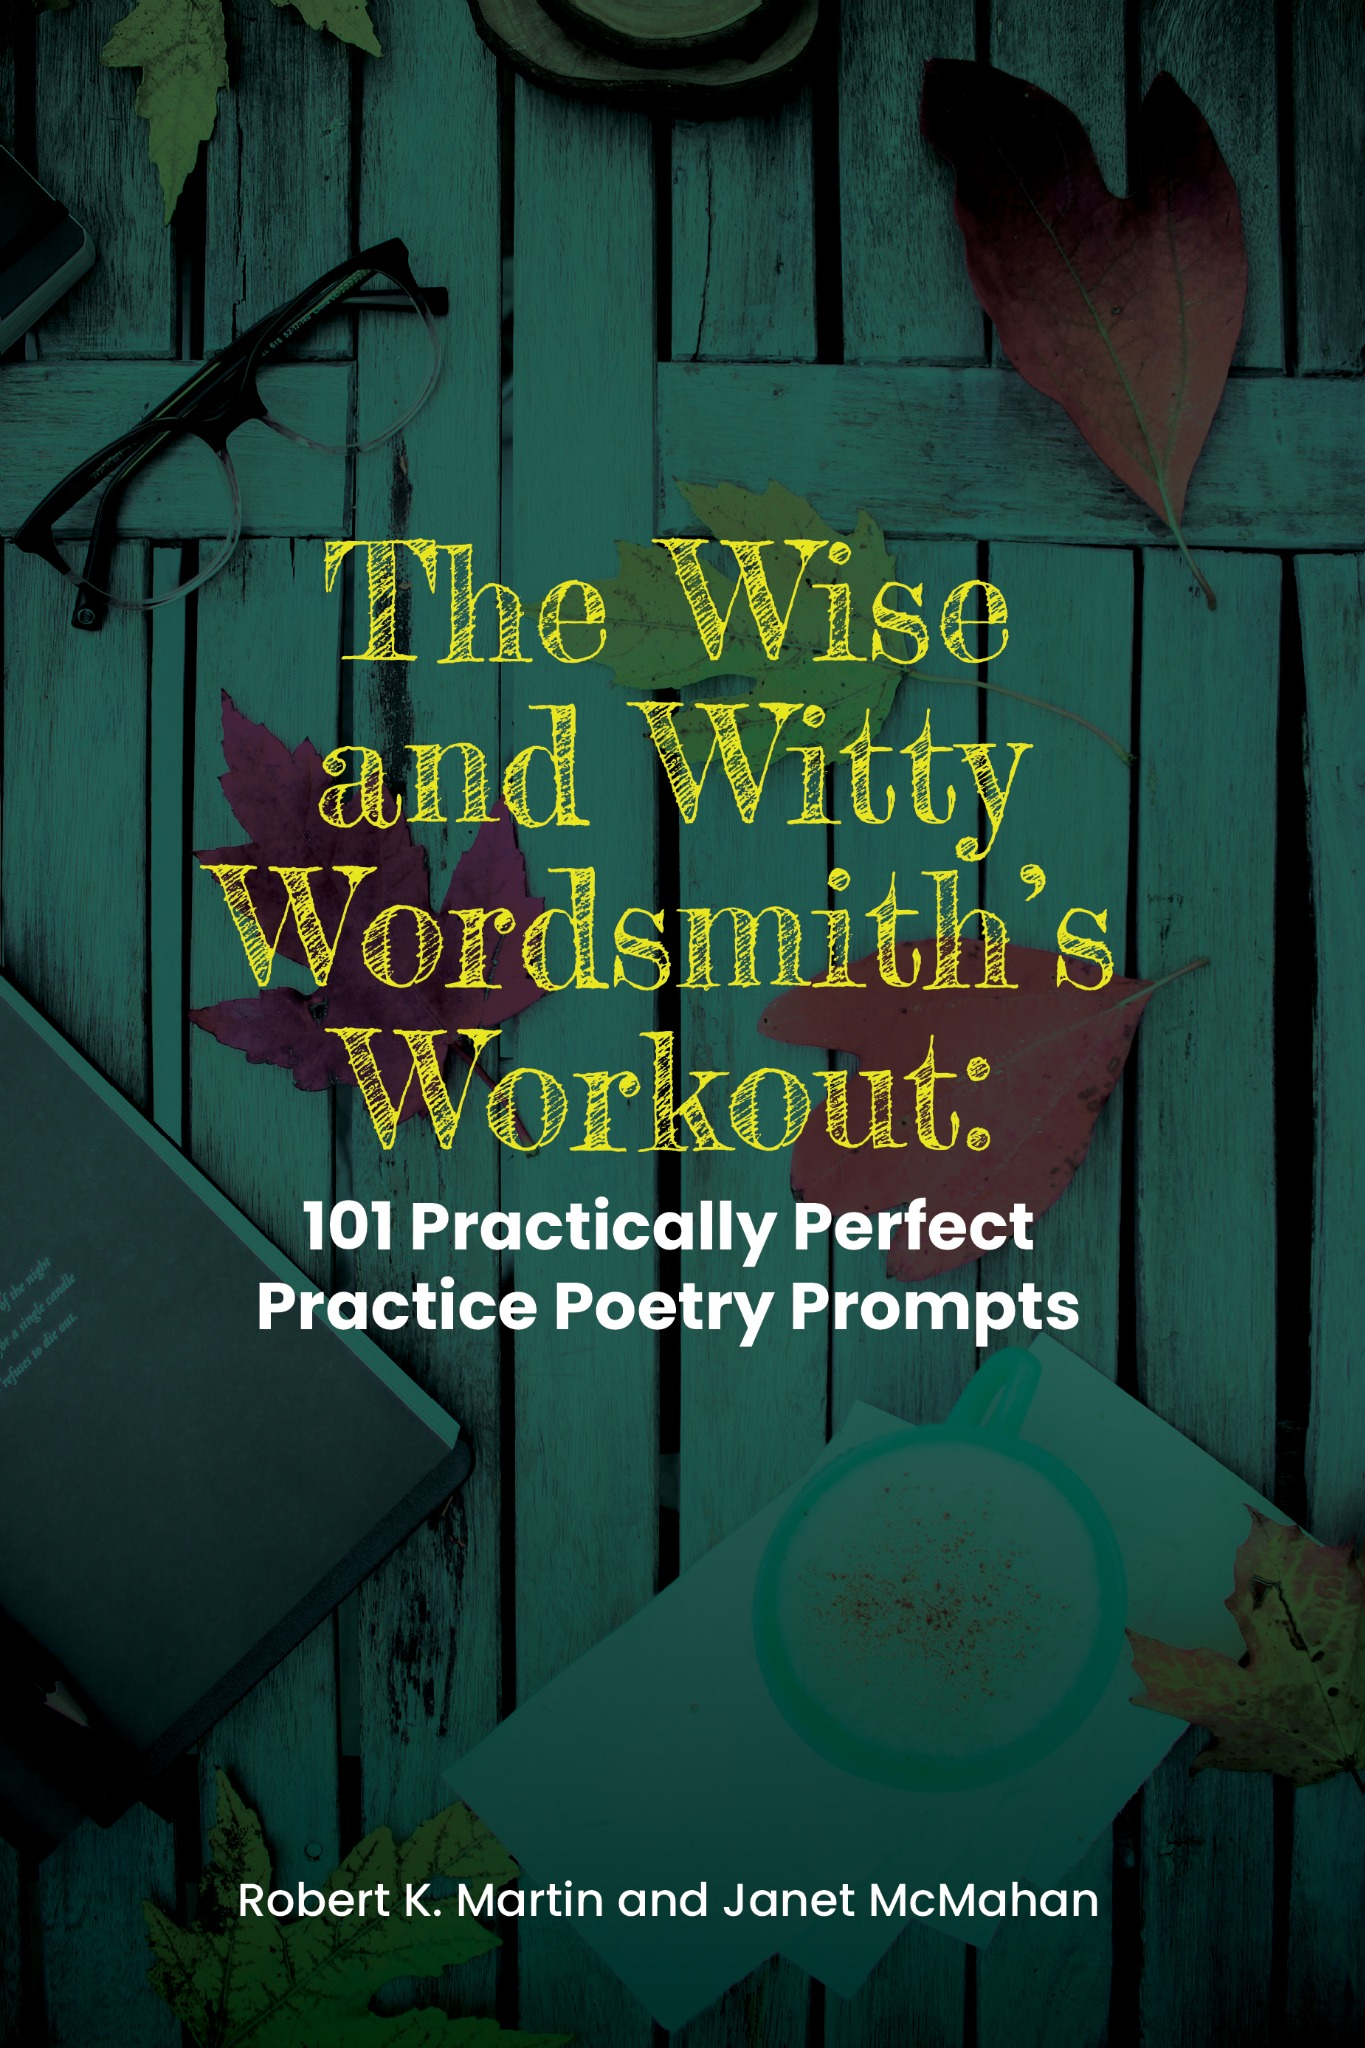 The Wise and Witty Wordsmith's Workout: 101 Practically Perfect Poetry Prompts (eReader)